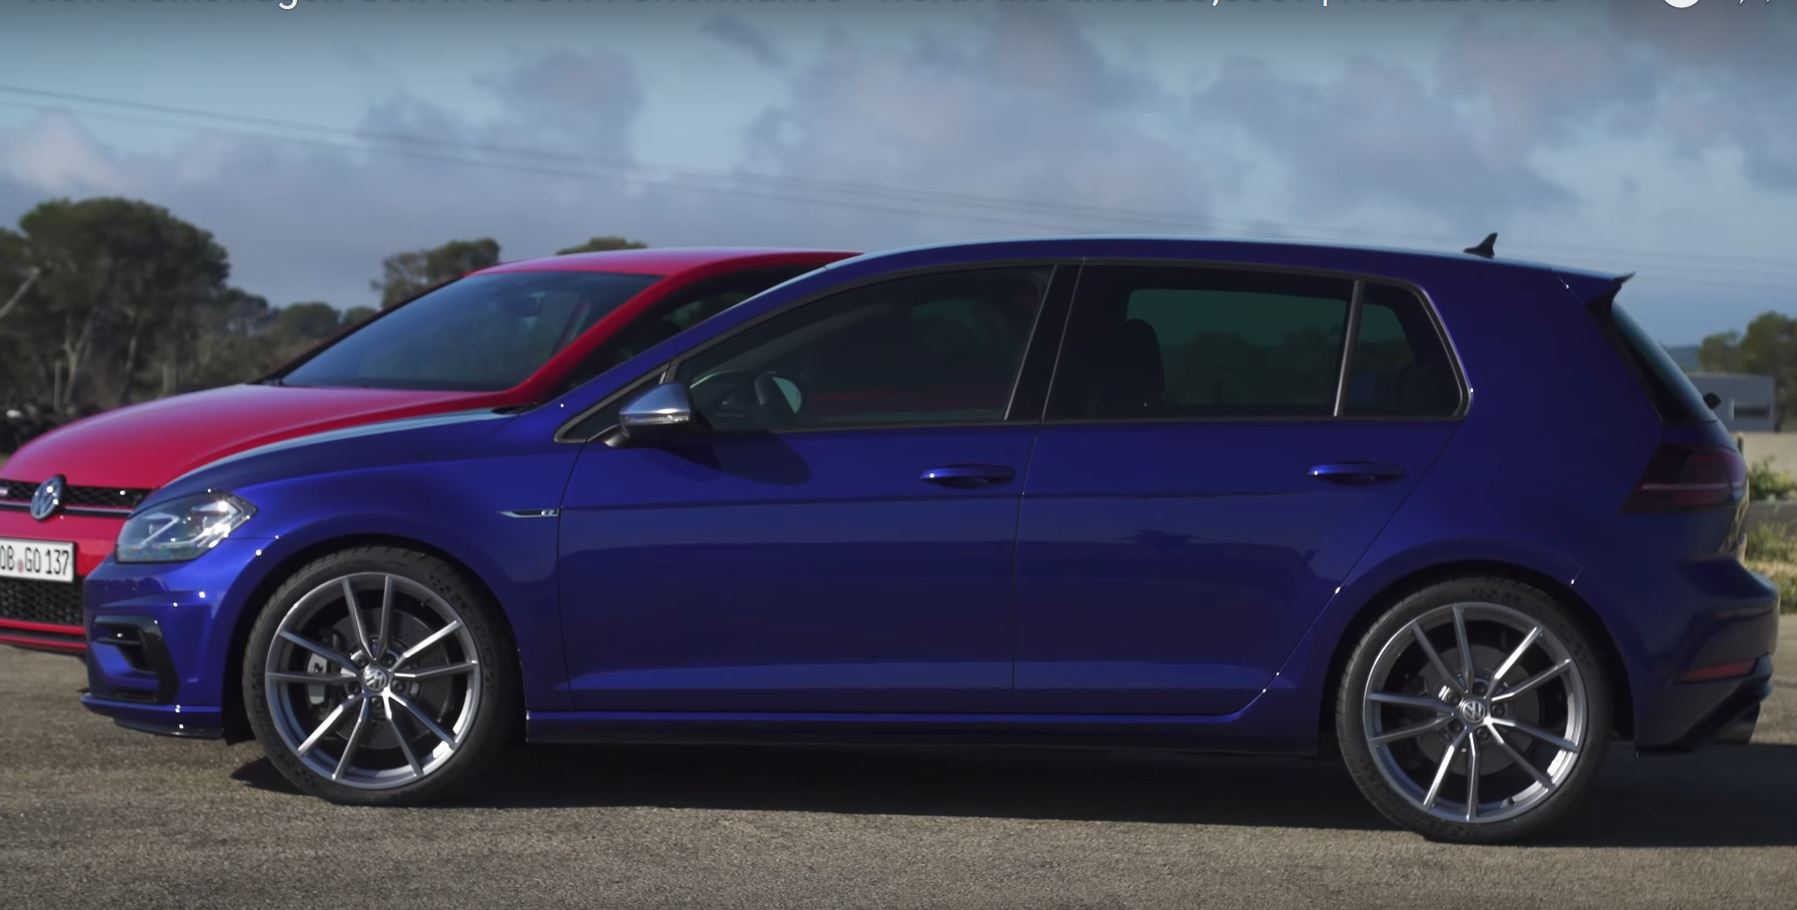 Golf R Has Surprising Acceleration Results 2017 Gti Performance Vs